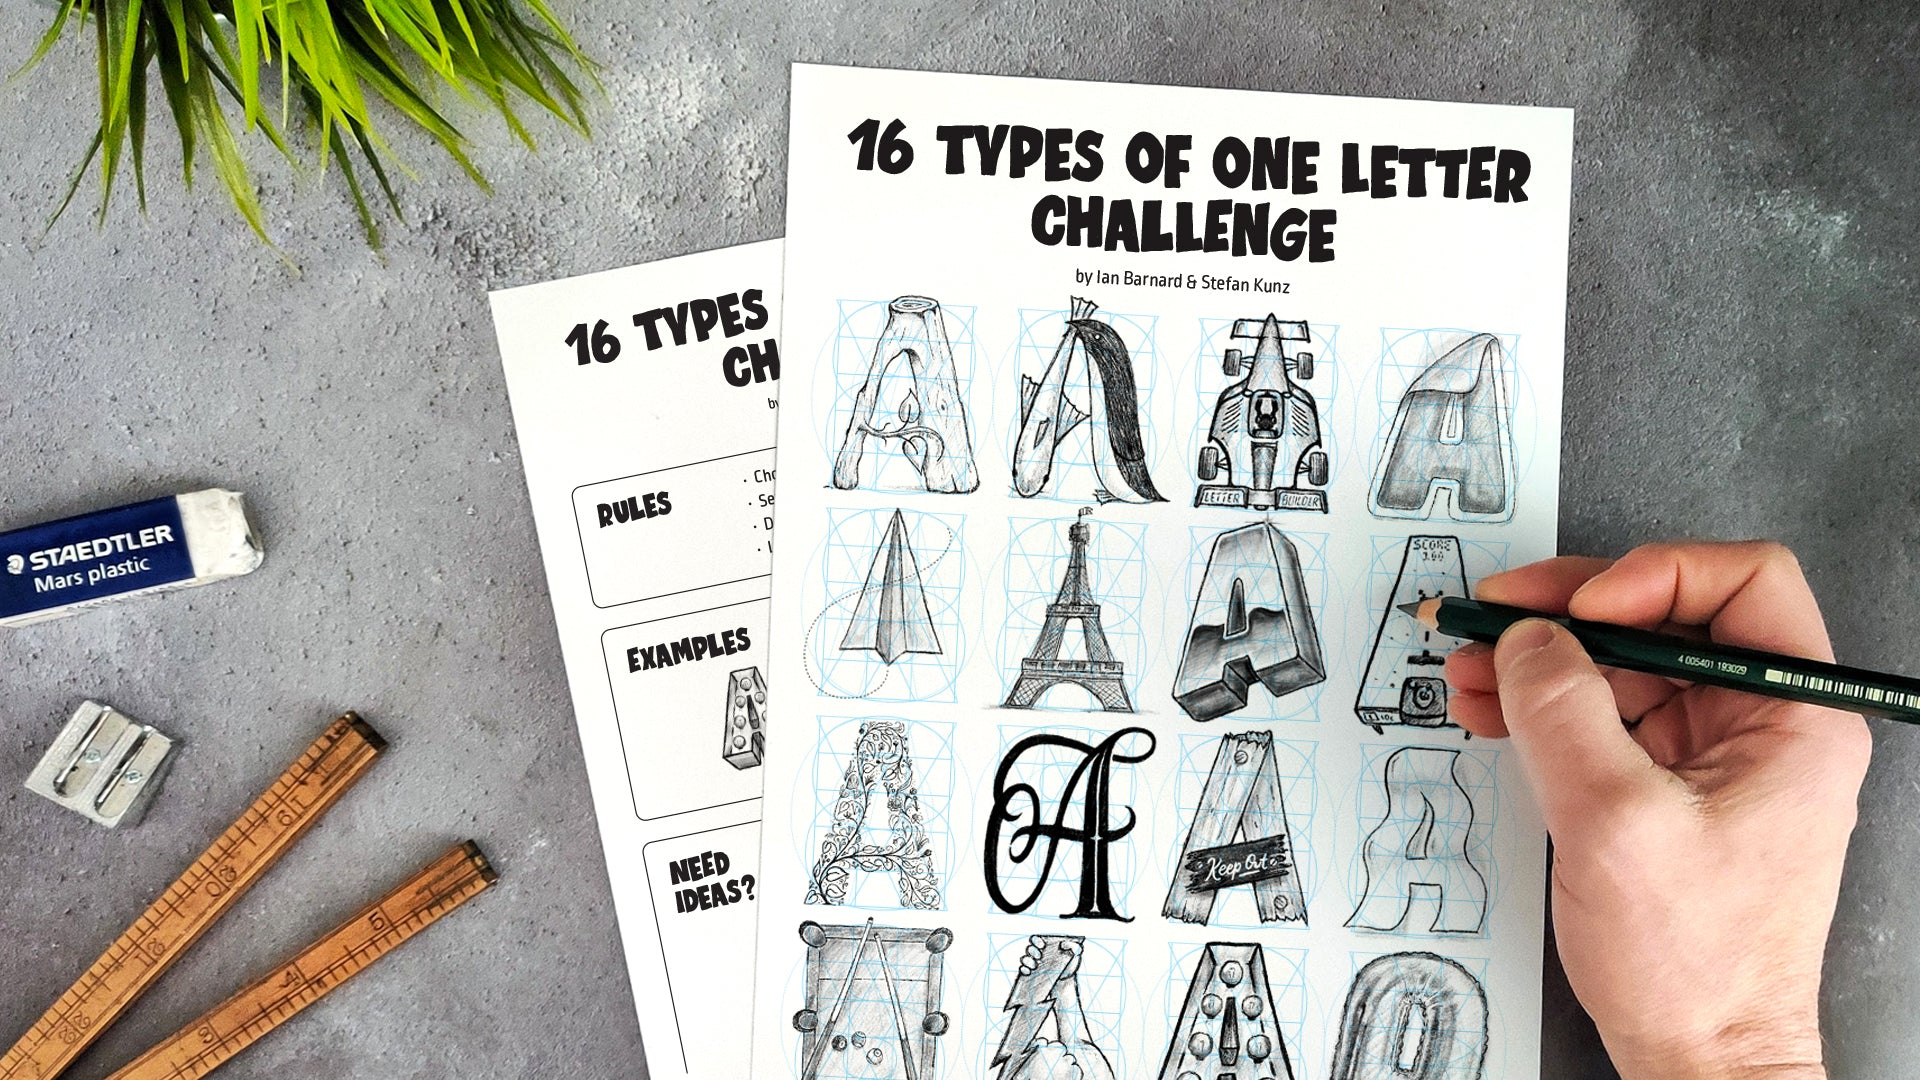 16 Types of One Letter Challenge